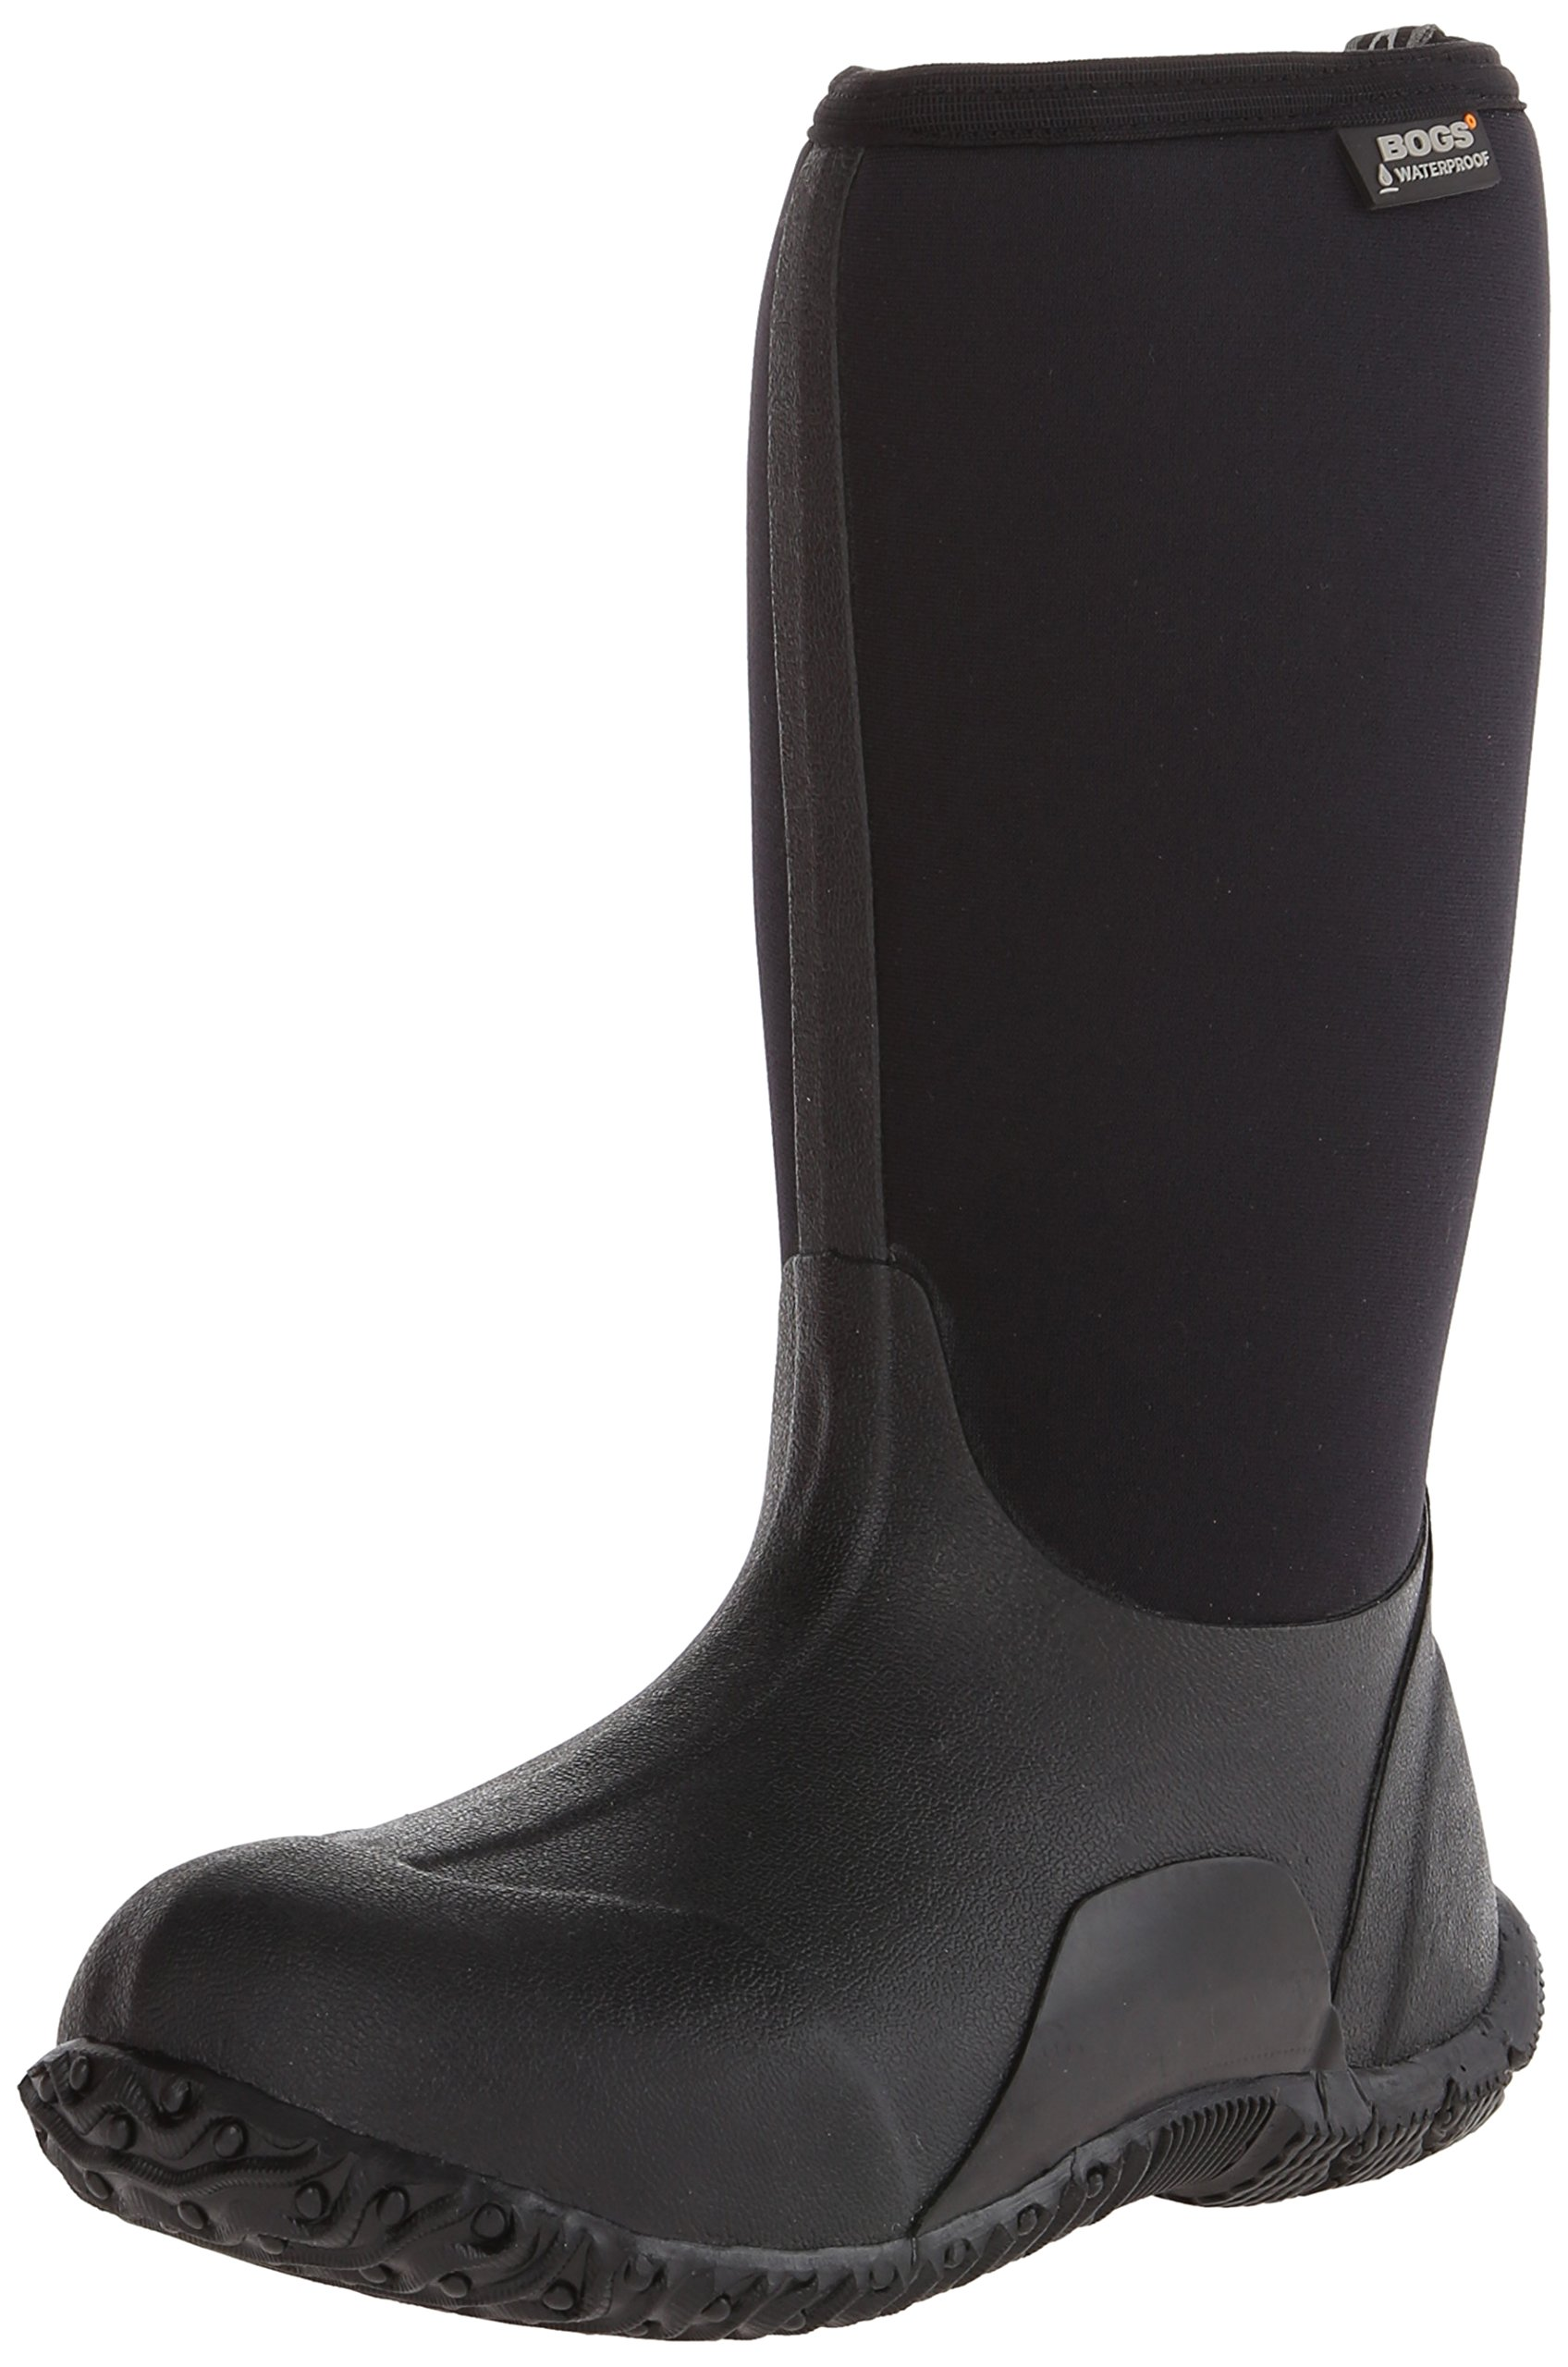 Bogs Classic No Handles Waterproof Insulated Rain Boot (Toddler/Little Kid/Big Kid),  Black, 3 M US Little Kid by Bogs (Image #2)